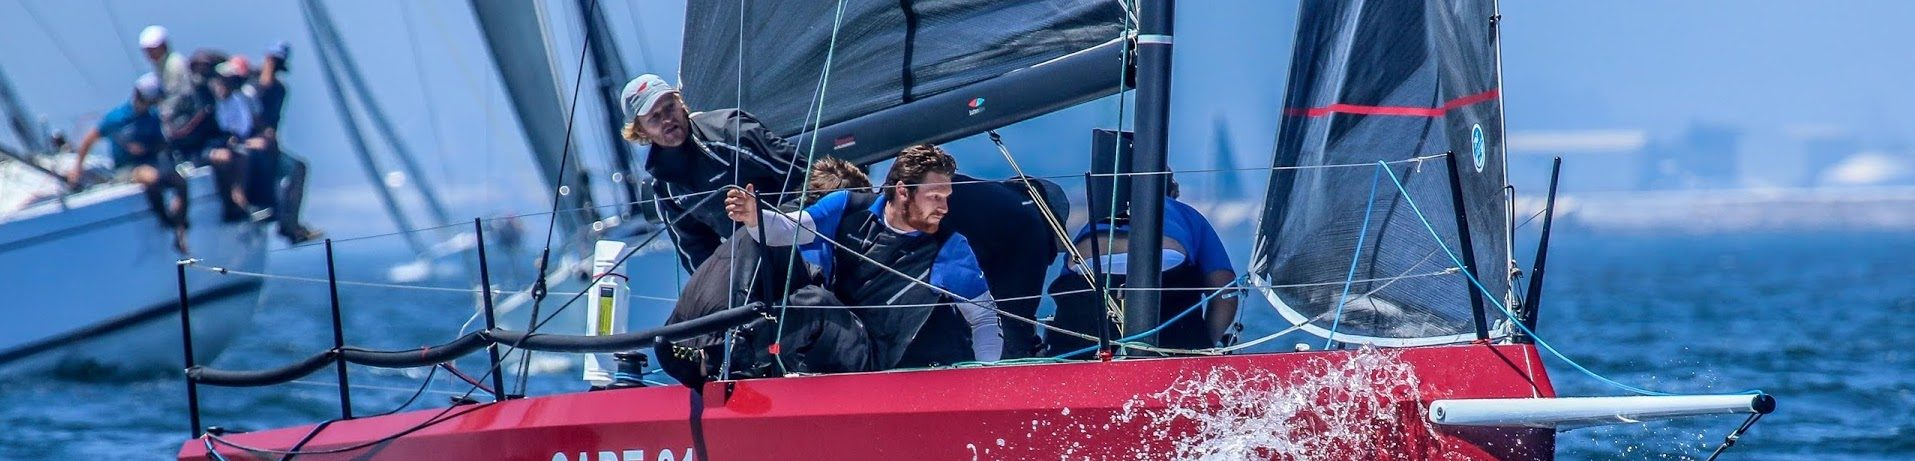 Western Cape Keelboat Championships 2018/9